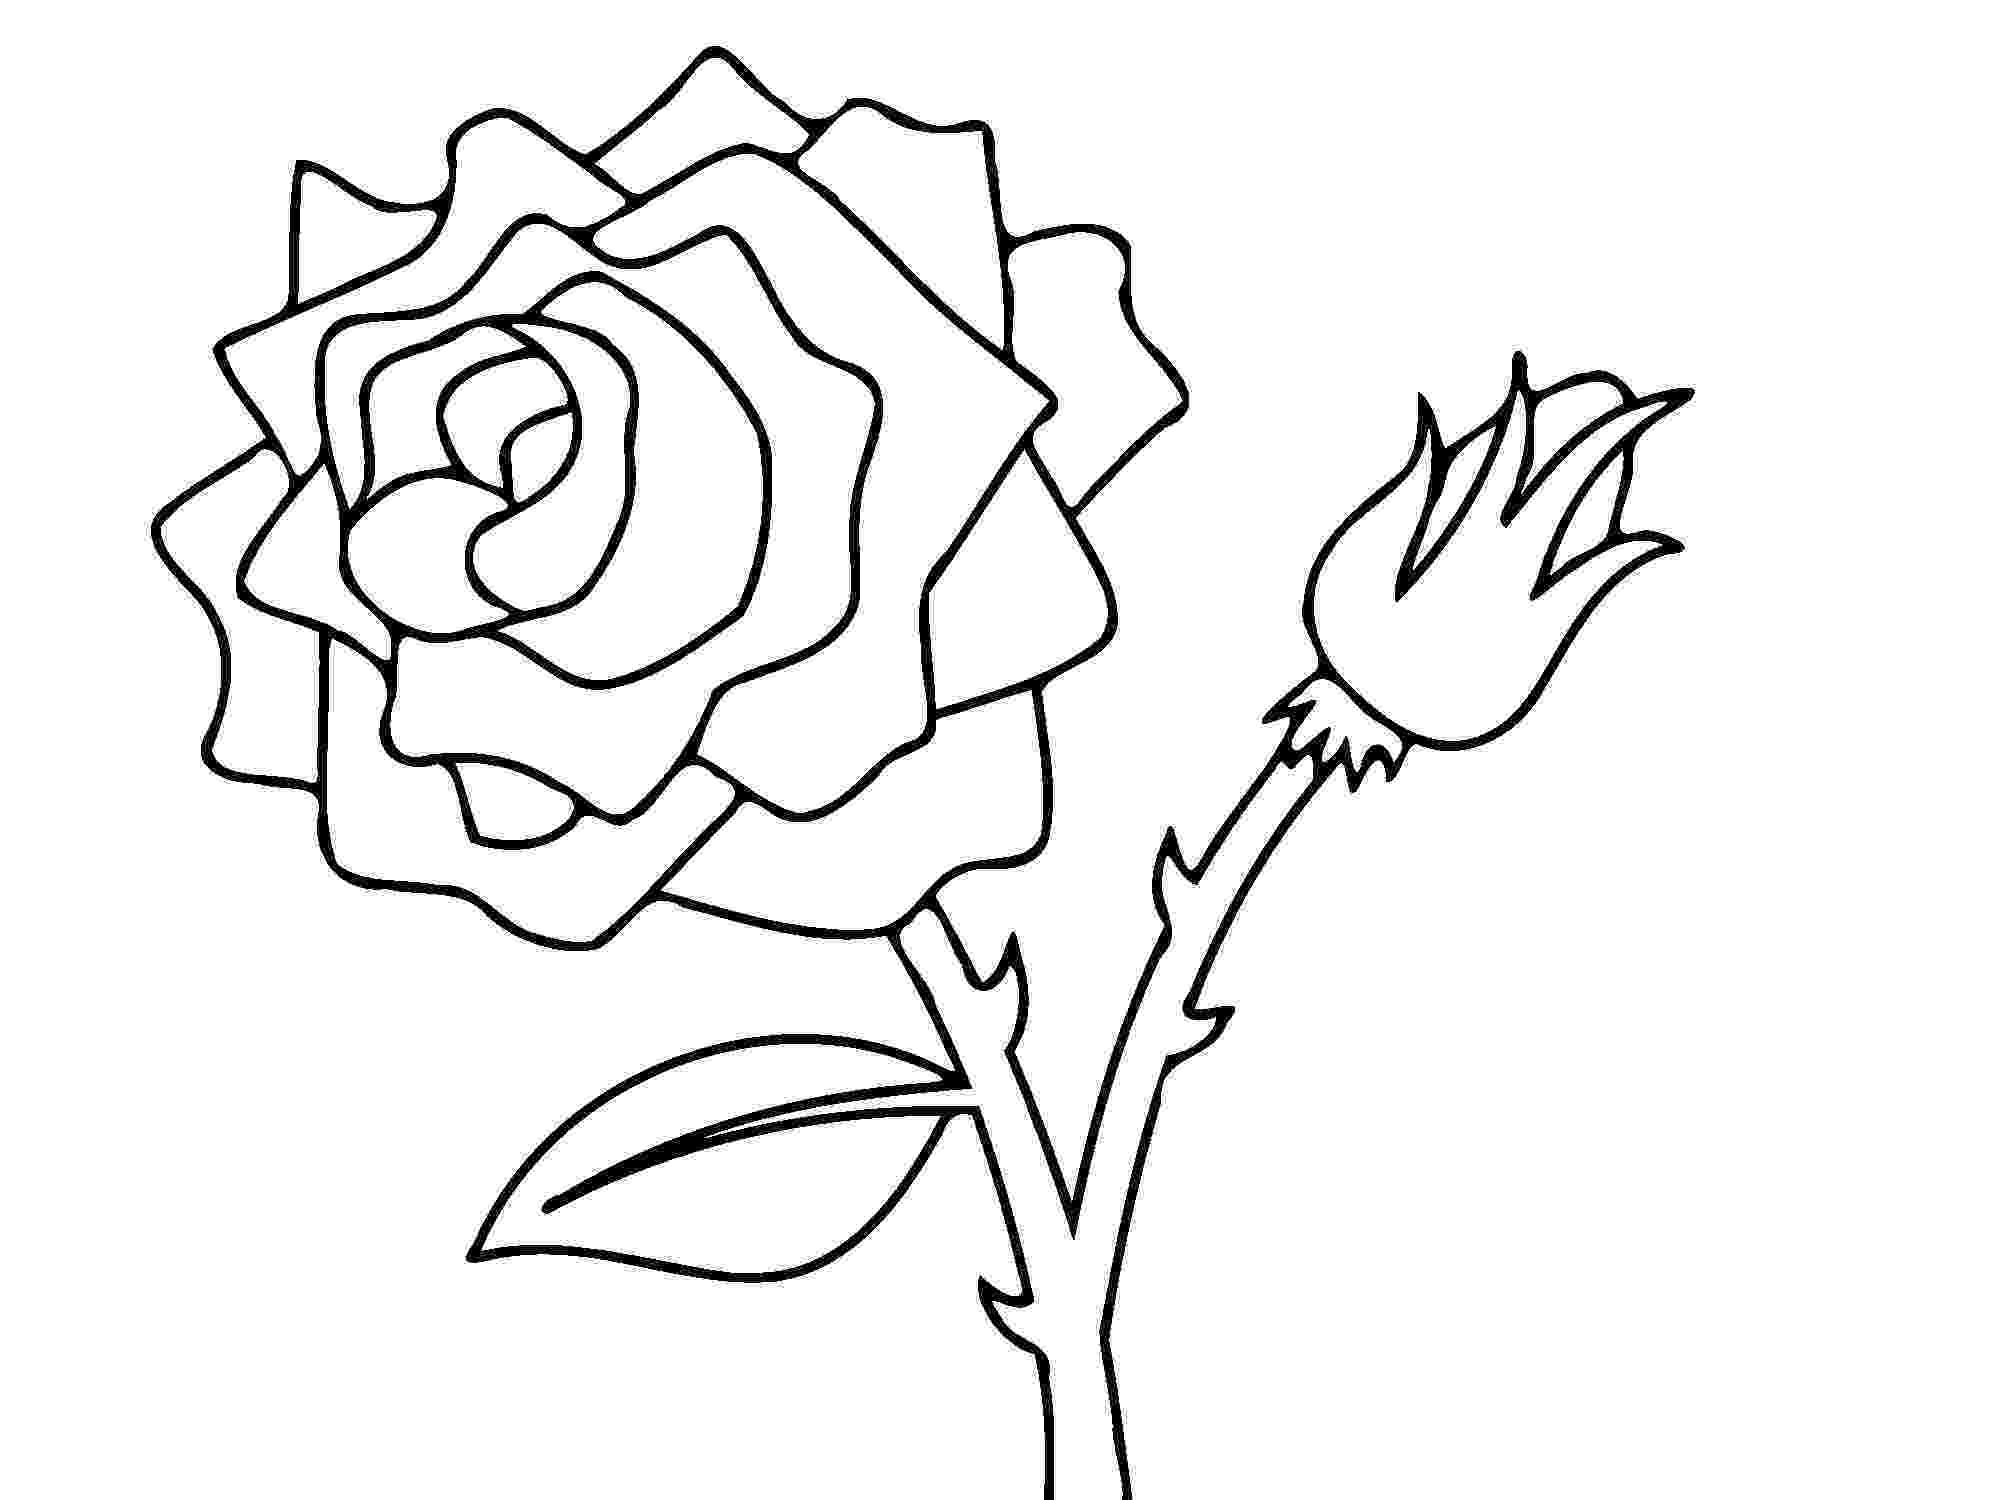 printable roses free printable roses coloring pages for kids roses printable 1 3